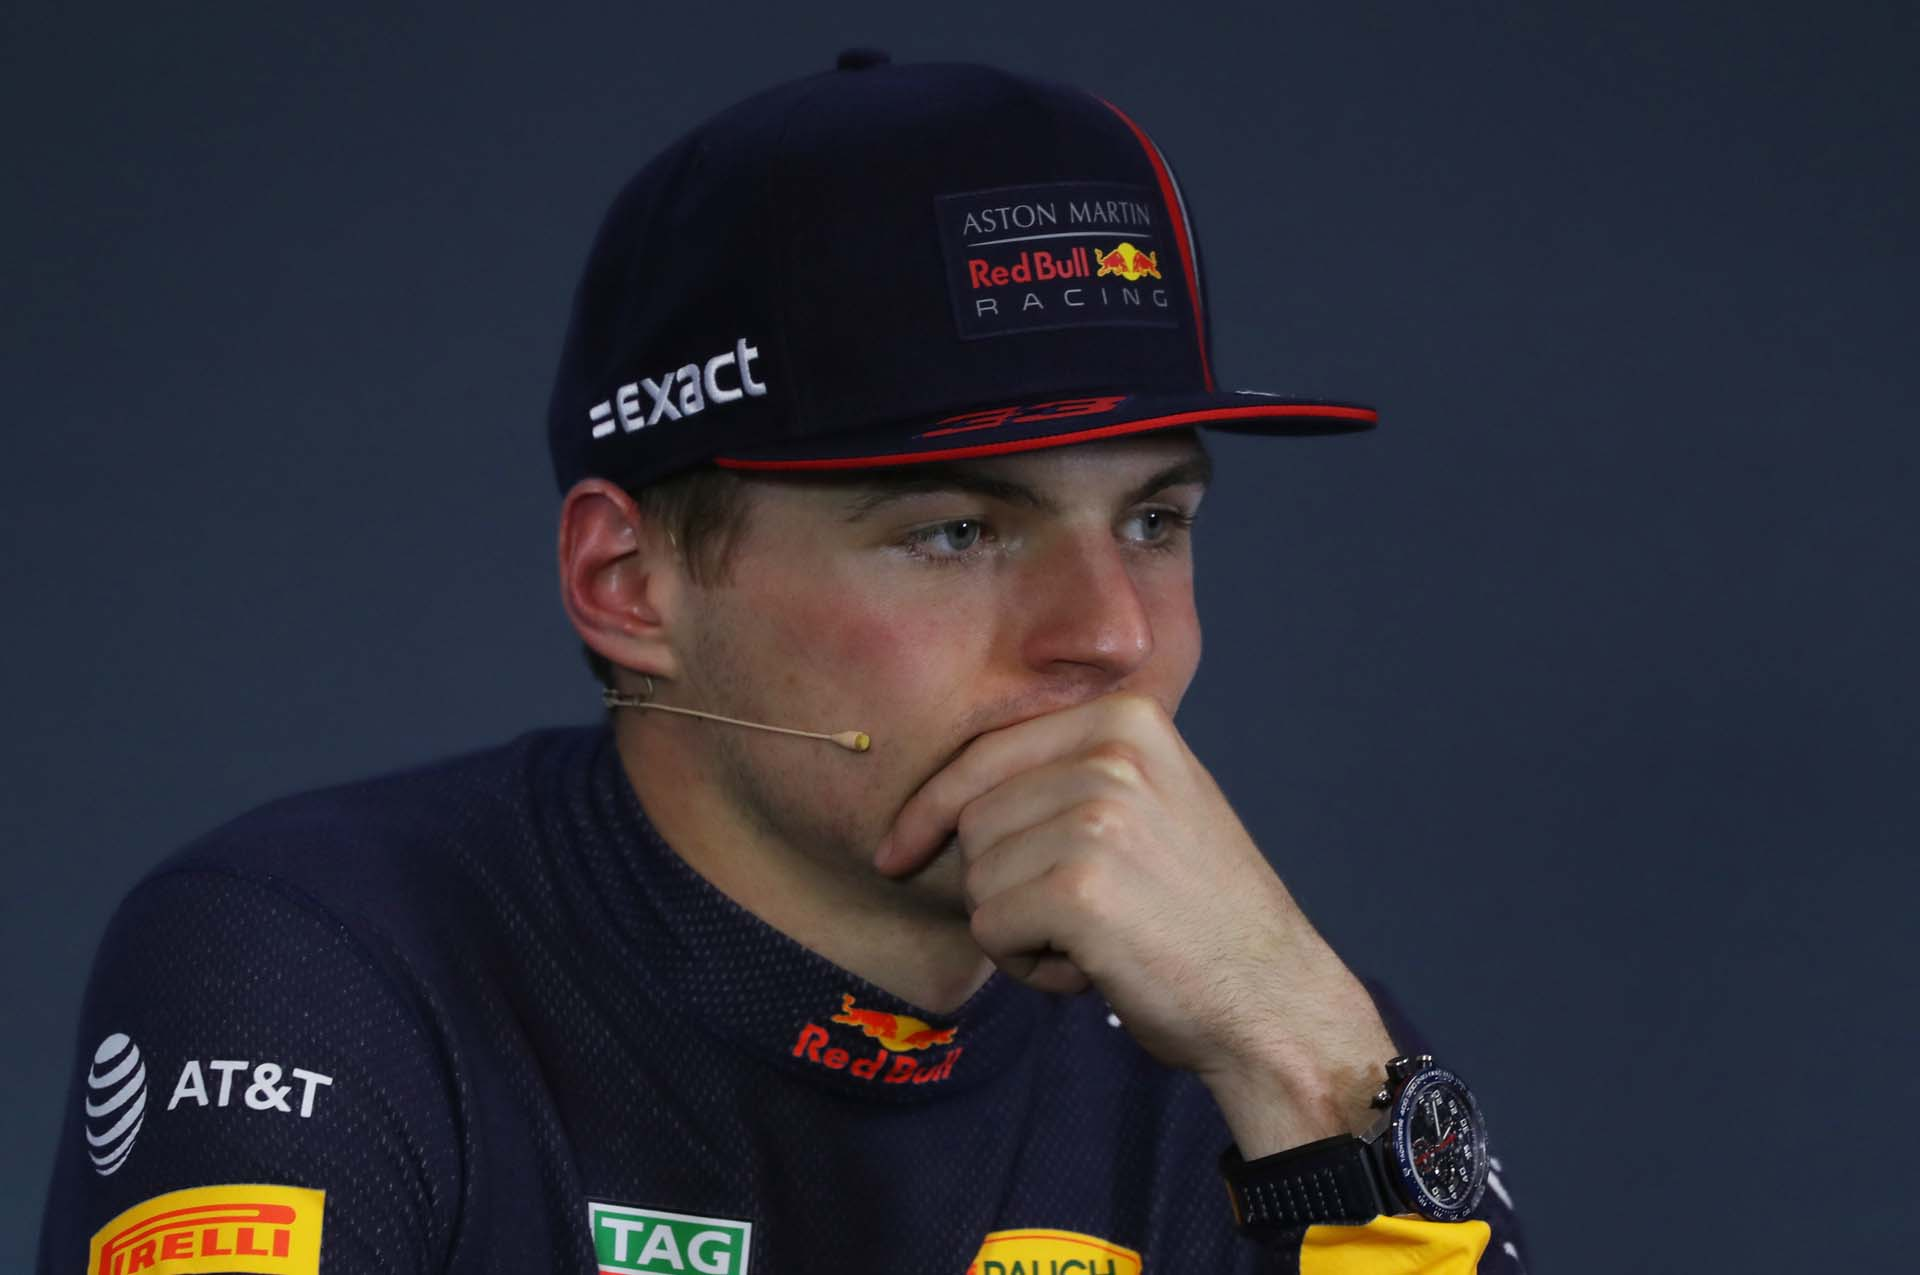 SPIELBERG,AUSTRIA,30.JUN.19 - MOTORSPORTS, FORMULA 1 - Grand Prix of Austria, Red Bull Ring. Image shows Max Verstappen (NED/ Red Bull Racing).  Photo: GEPA pictures/ Andreas Pranter - For editorial use only. Image is free of charge.